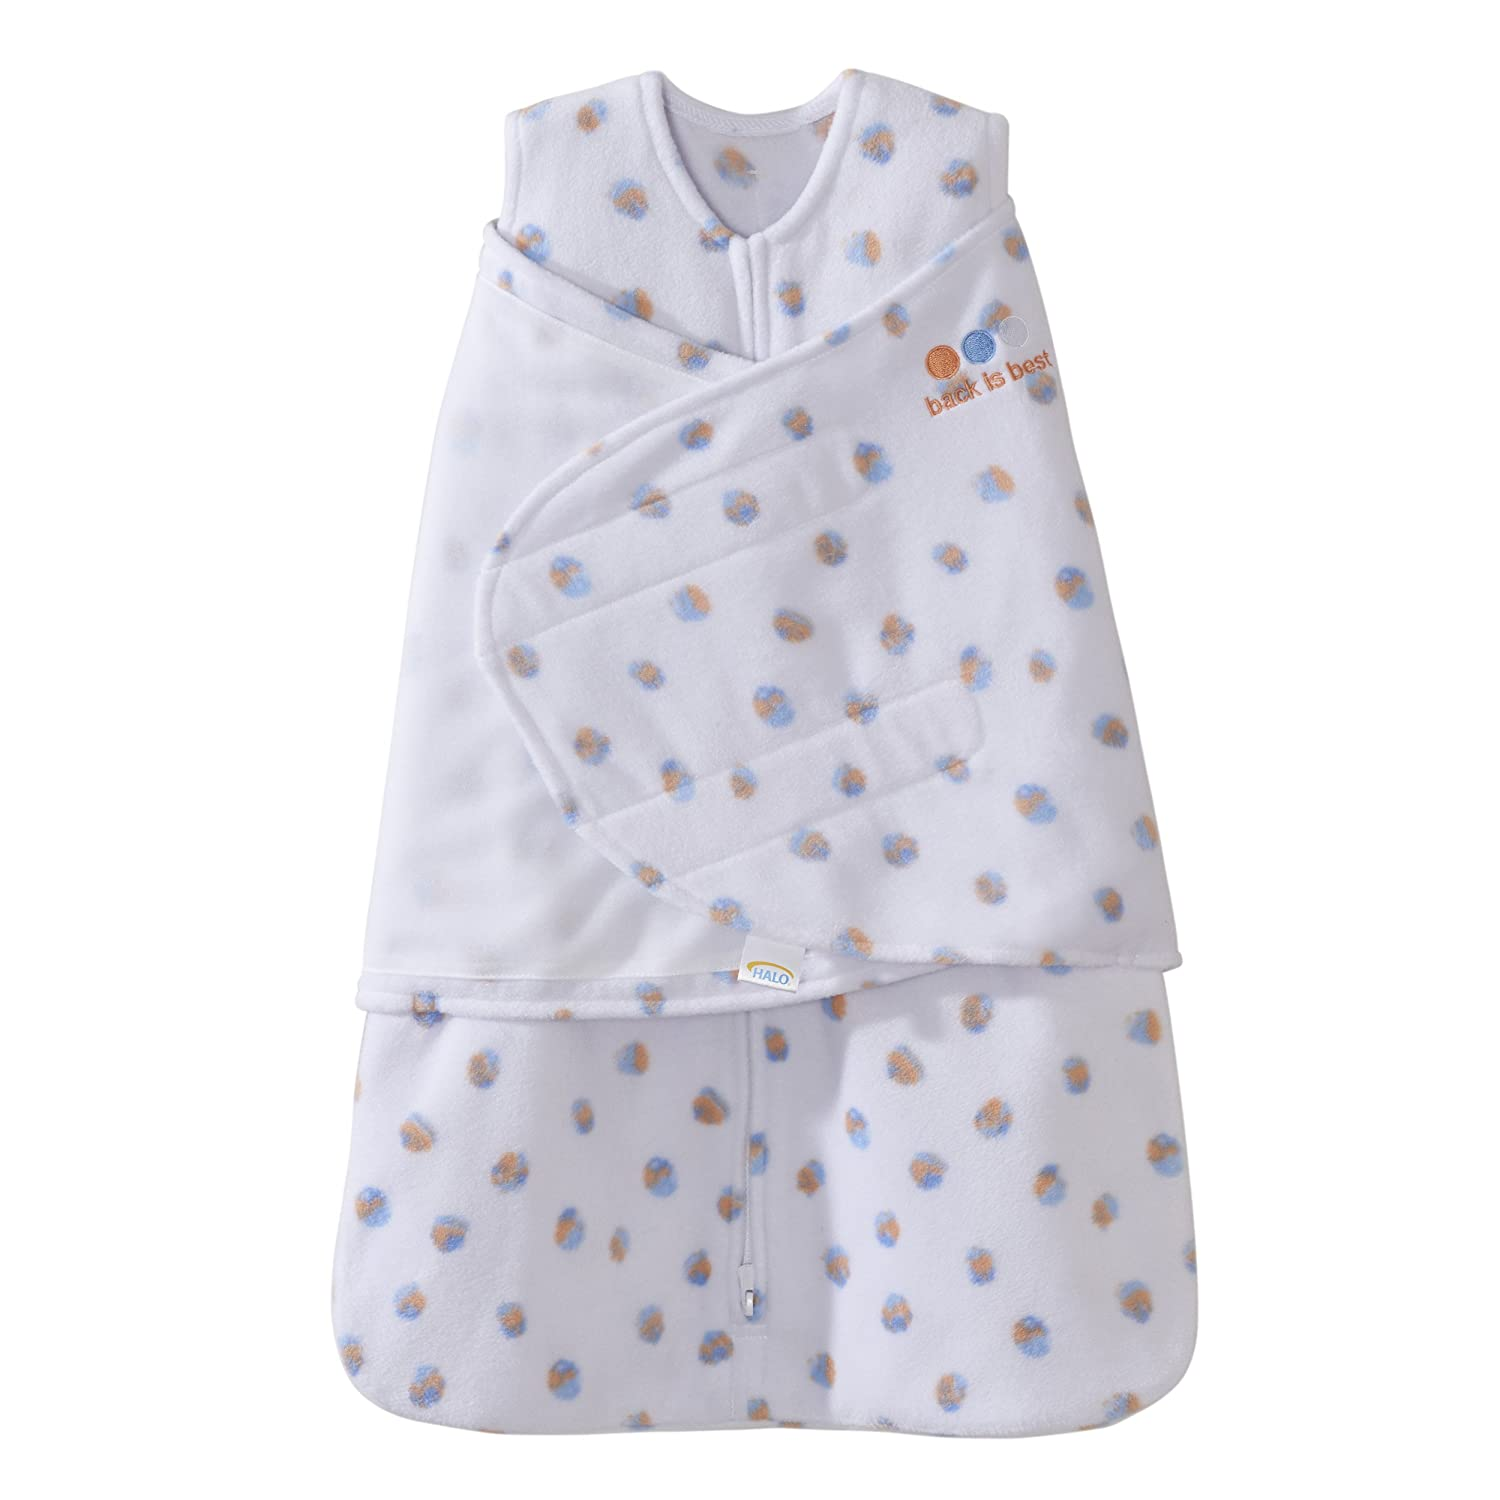 Halo Sleepsack Swaddle, Micro-Fleece, Blue/Orange, Newborn 0-3 Months Best For Baby 12889